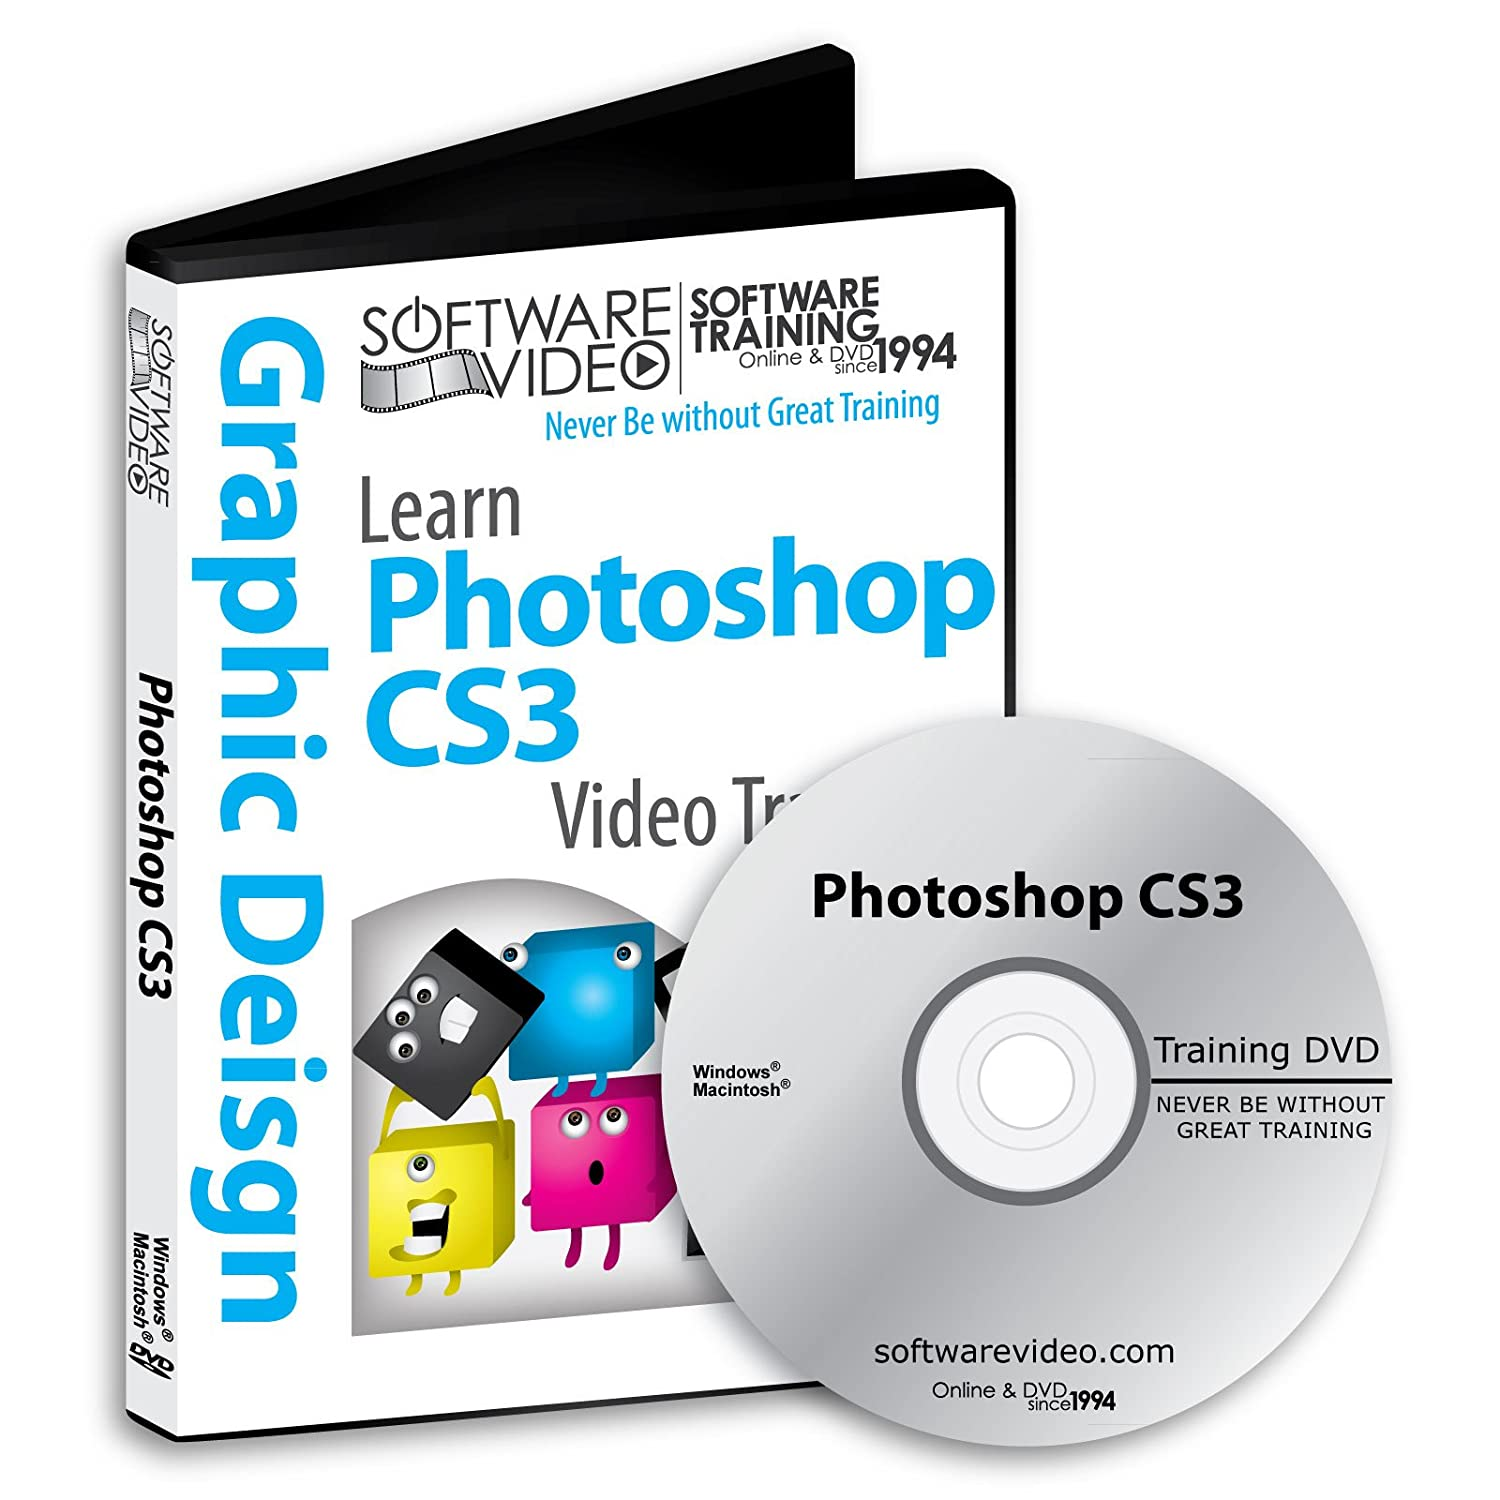 Amazon software video learn adobe photoshop cs3 training dvd amazon software video learn adobe photoshop cs3 training dvd christmas holiday sale 60 off training video tutorials dvd over 8 hours of video baditri Choice Image